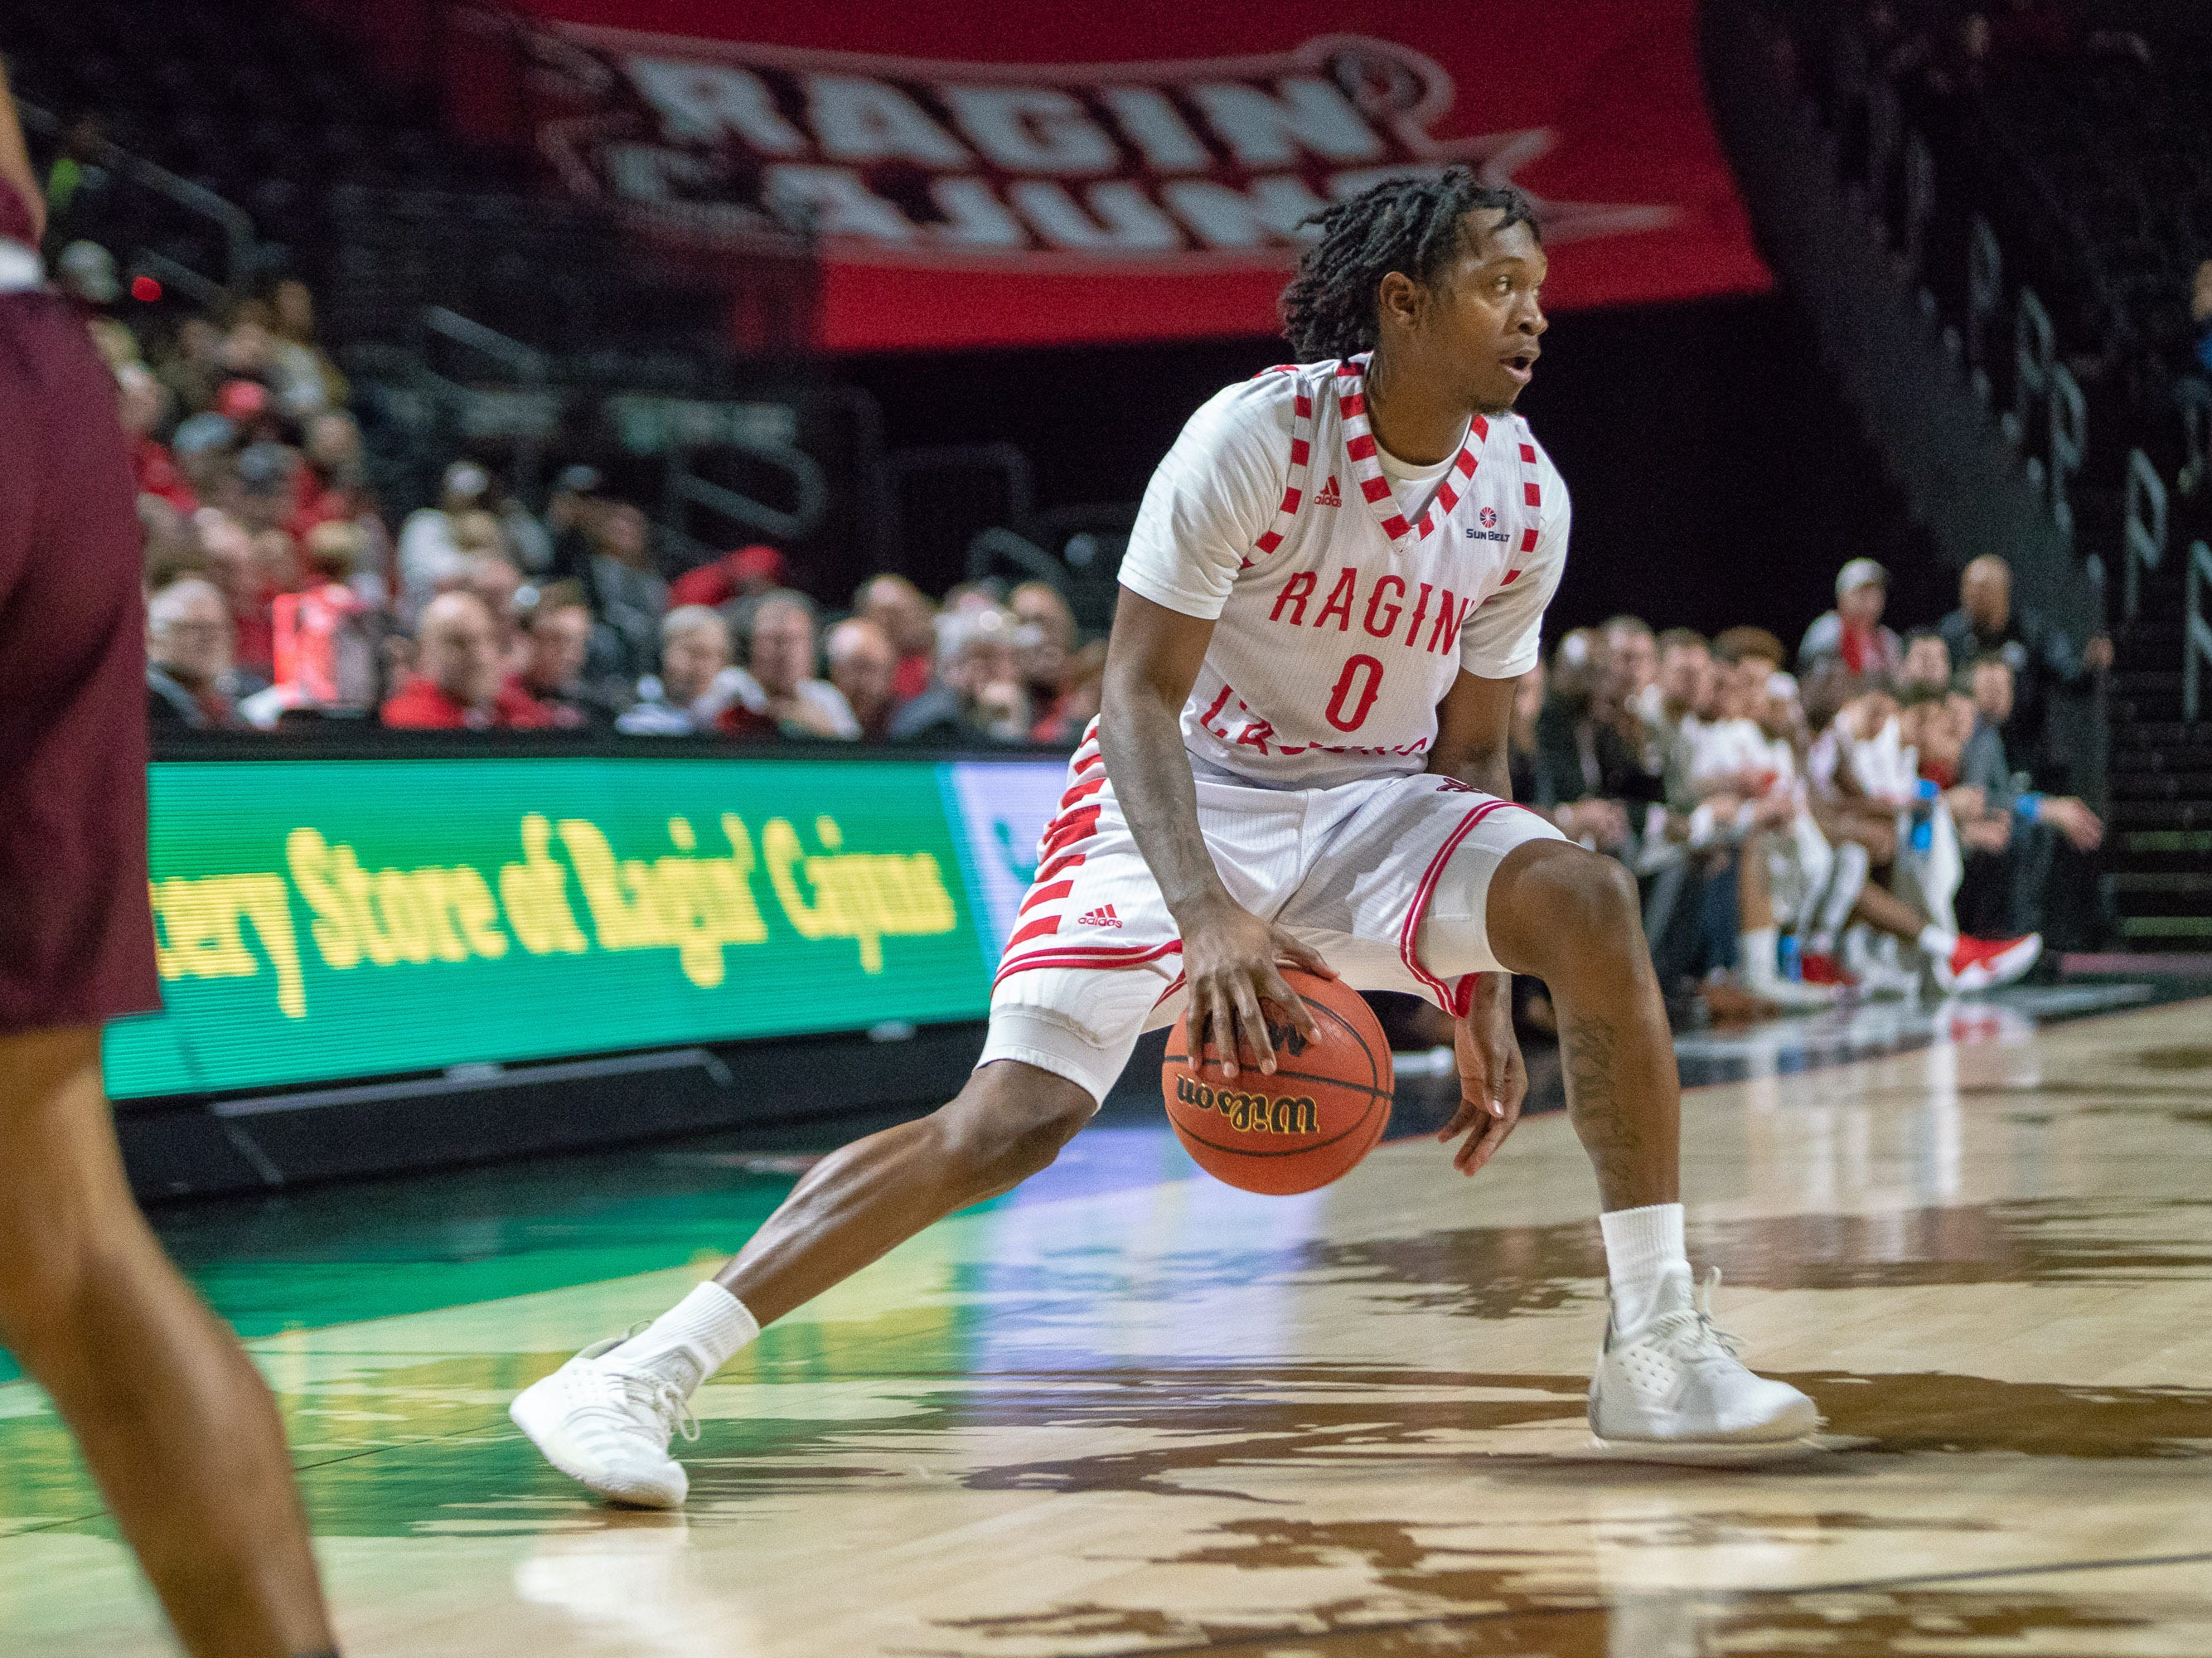 UL's Cedric Russell dribbles the ball during the play as the Ragin' Cajuns take on the Little Rock Trojans at the Cajundome on January 5, 2019.